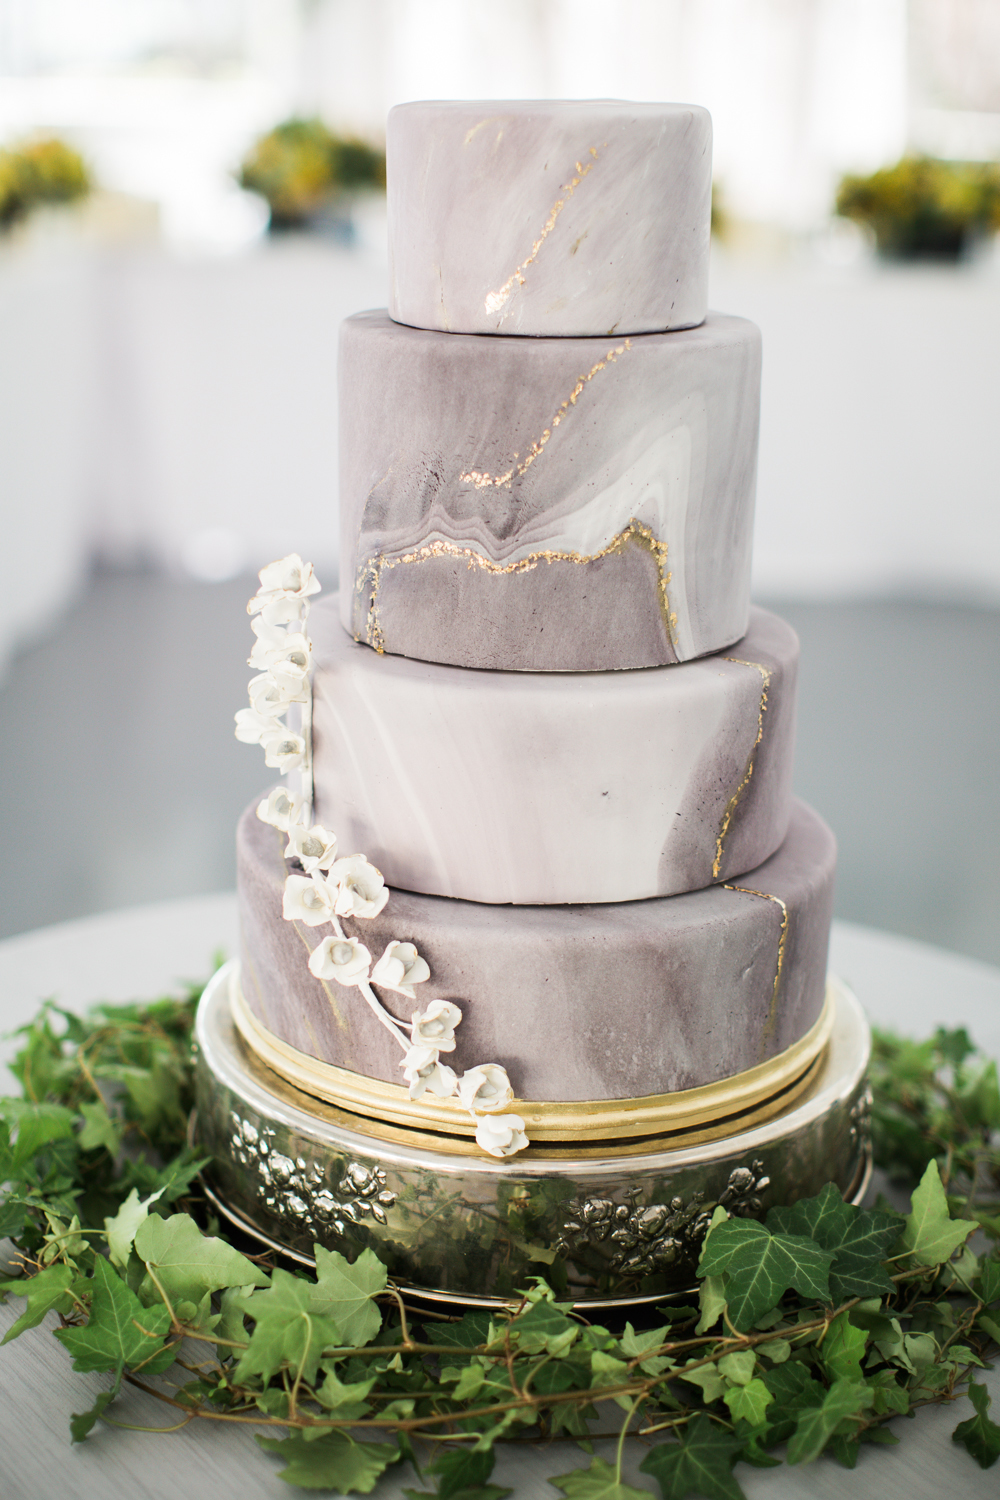 Gray & white marbled wedding